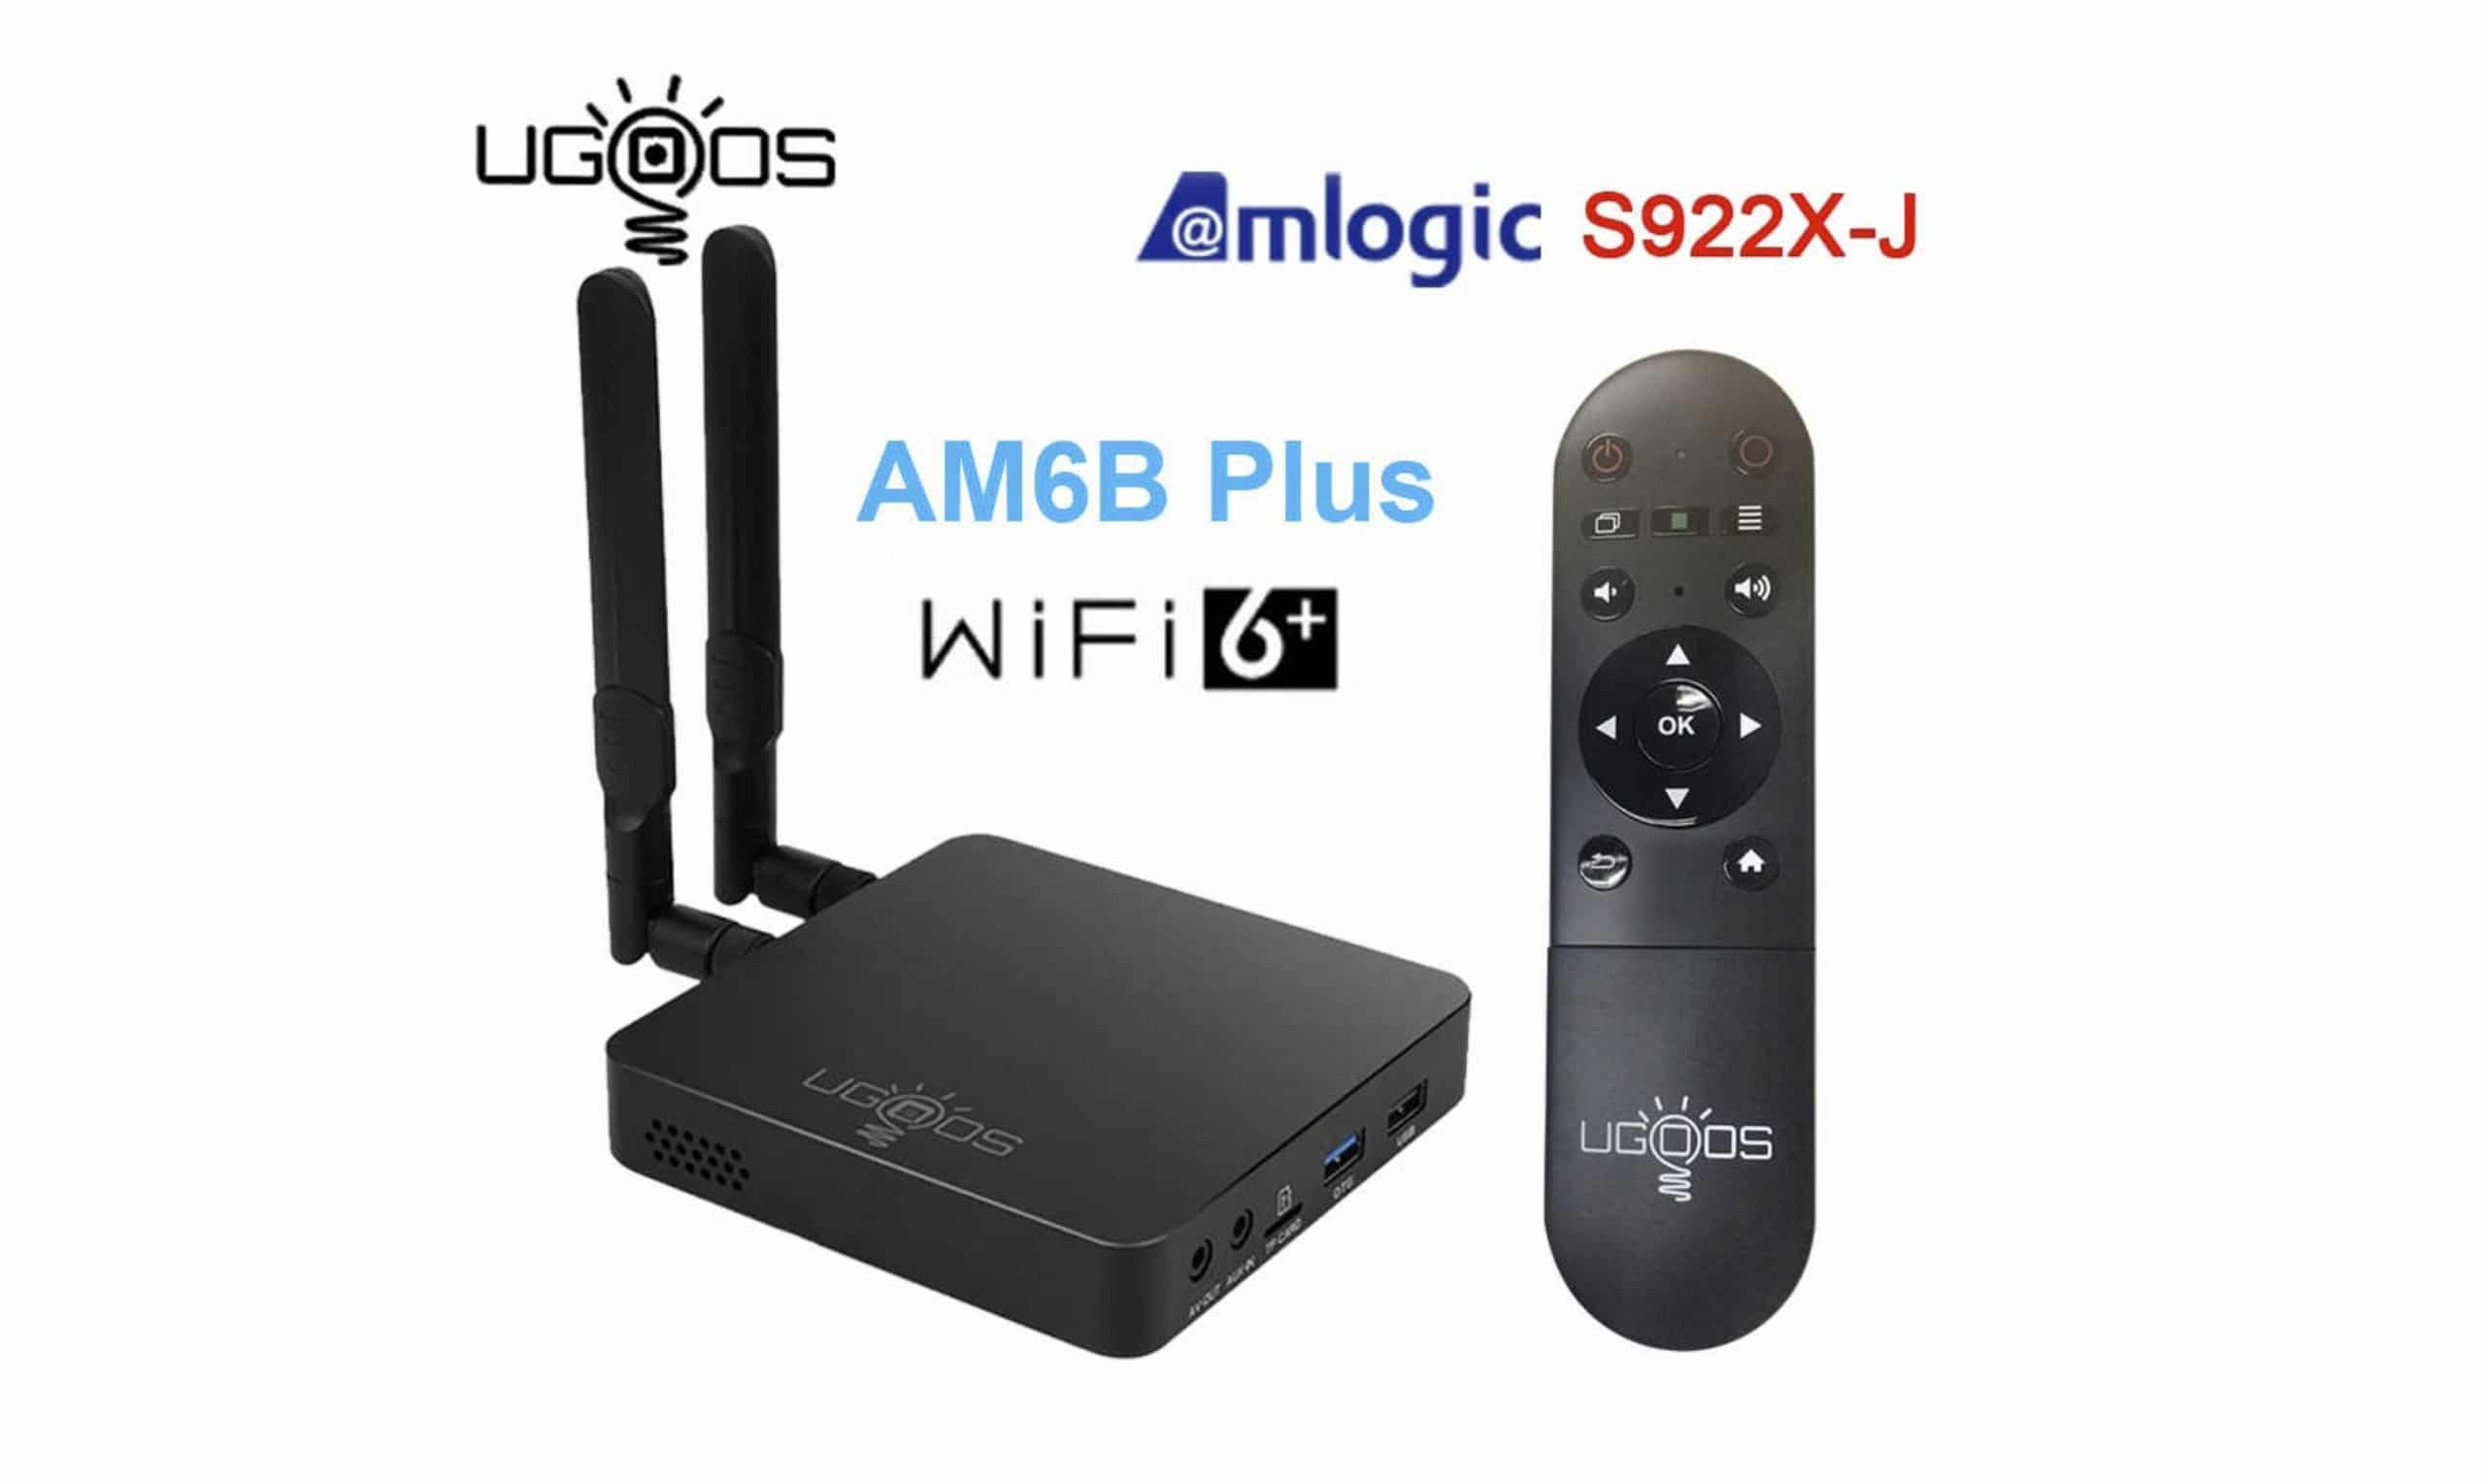 UGOOS AM6B Plus is an upgraded AM6 Plus version now with WiFi 6